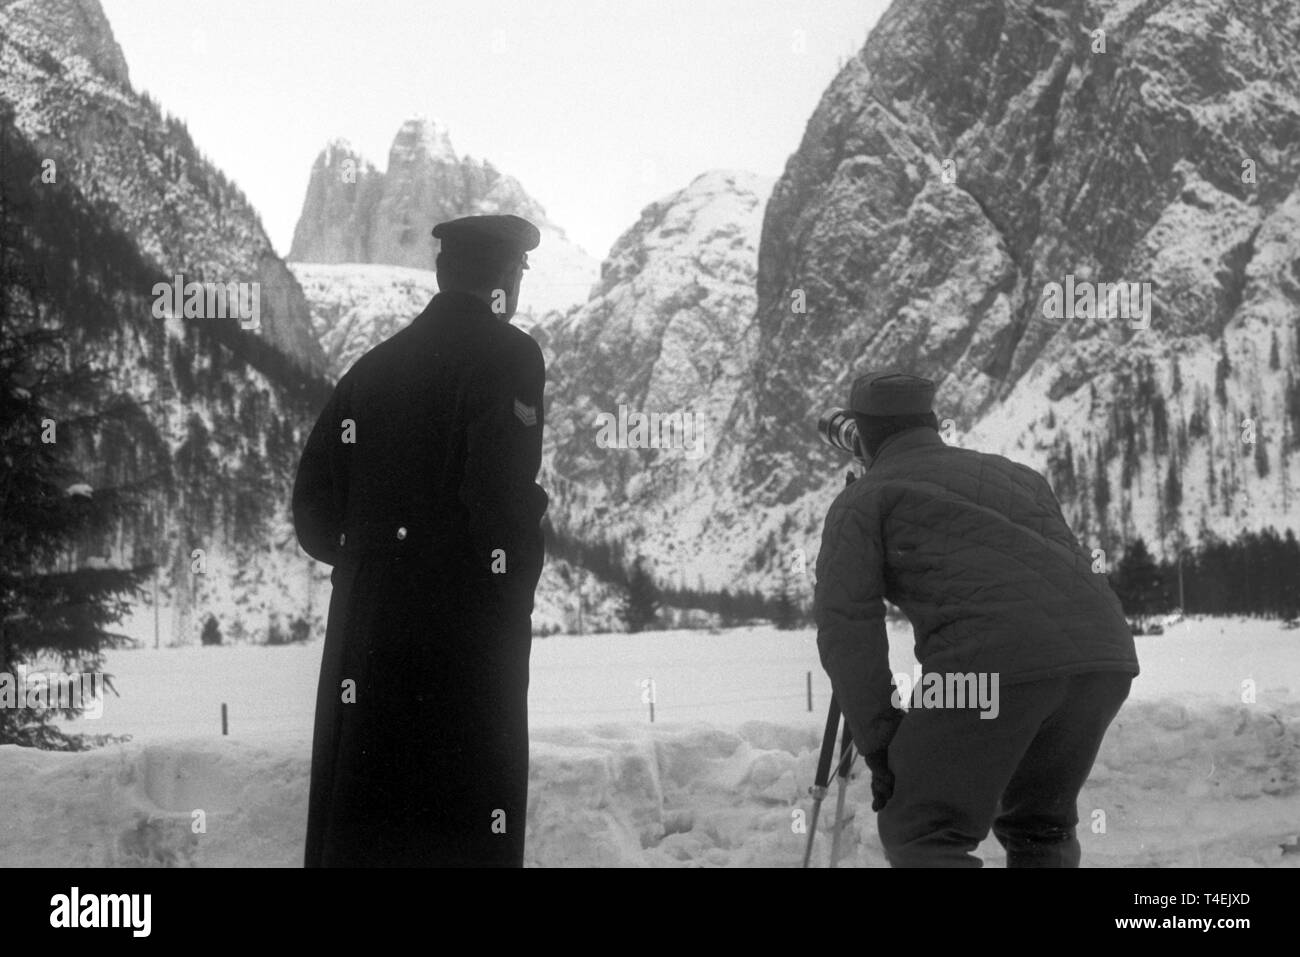 Observers watch the three mountaineers during their ascent at the northern face of the 'Große Zinne'. In the background the northern face of the 'Drei Zinnen' (undated archive picture from January 1963).   usage worldwide - Stock Image